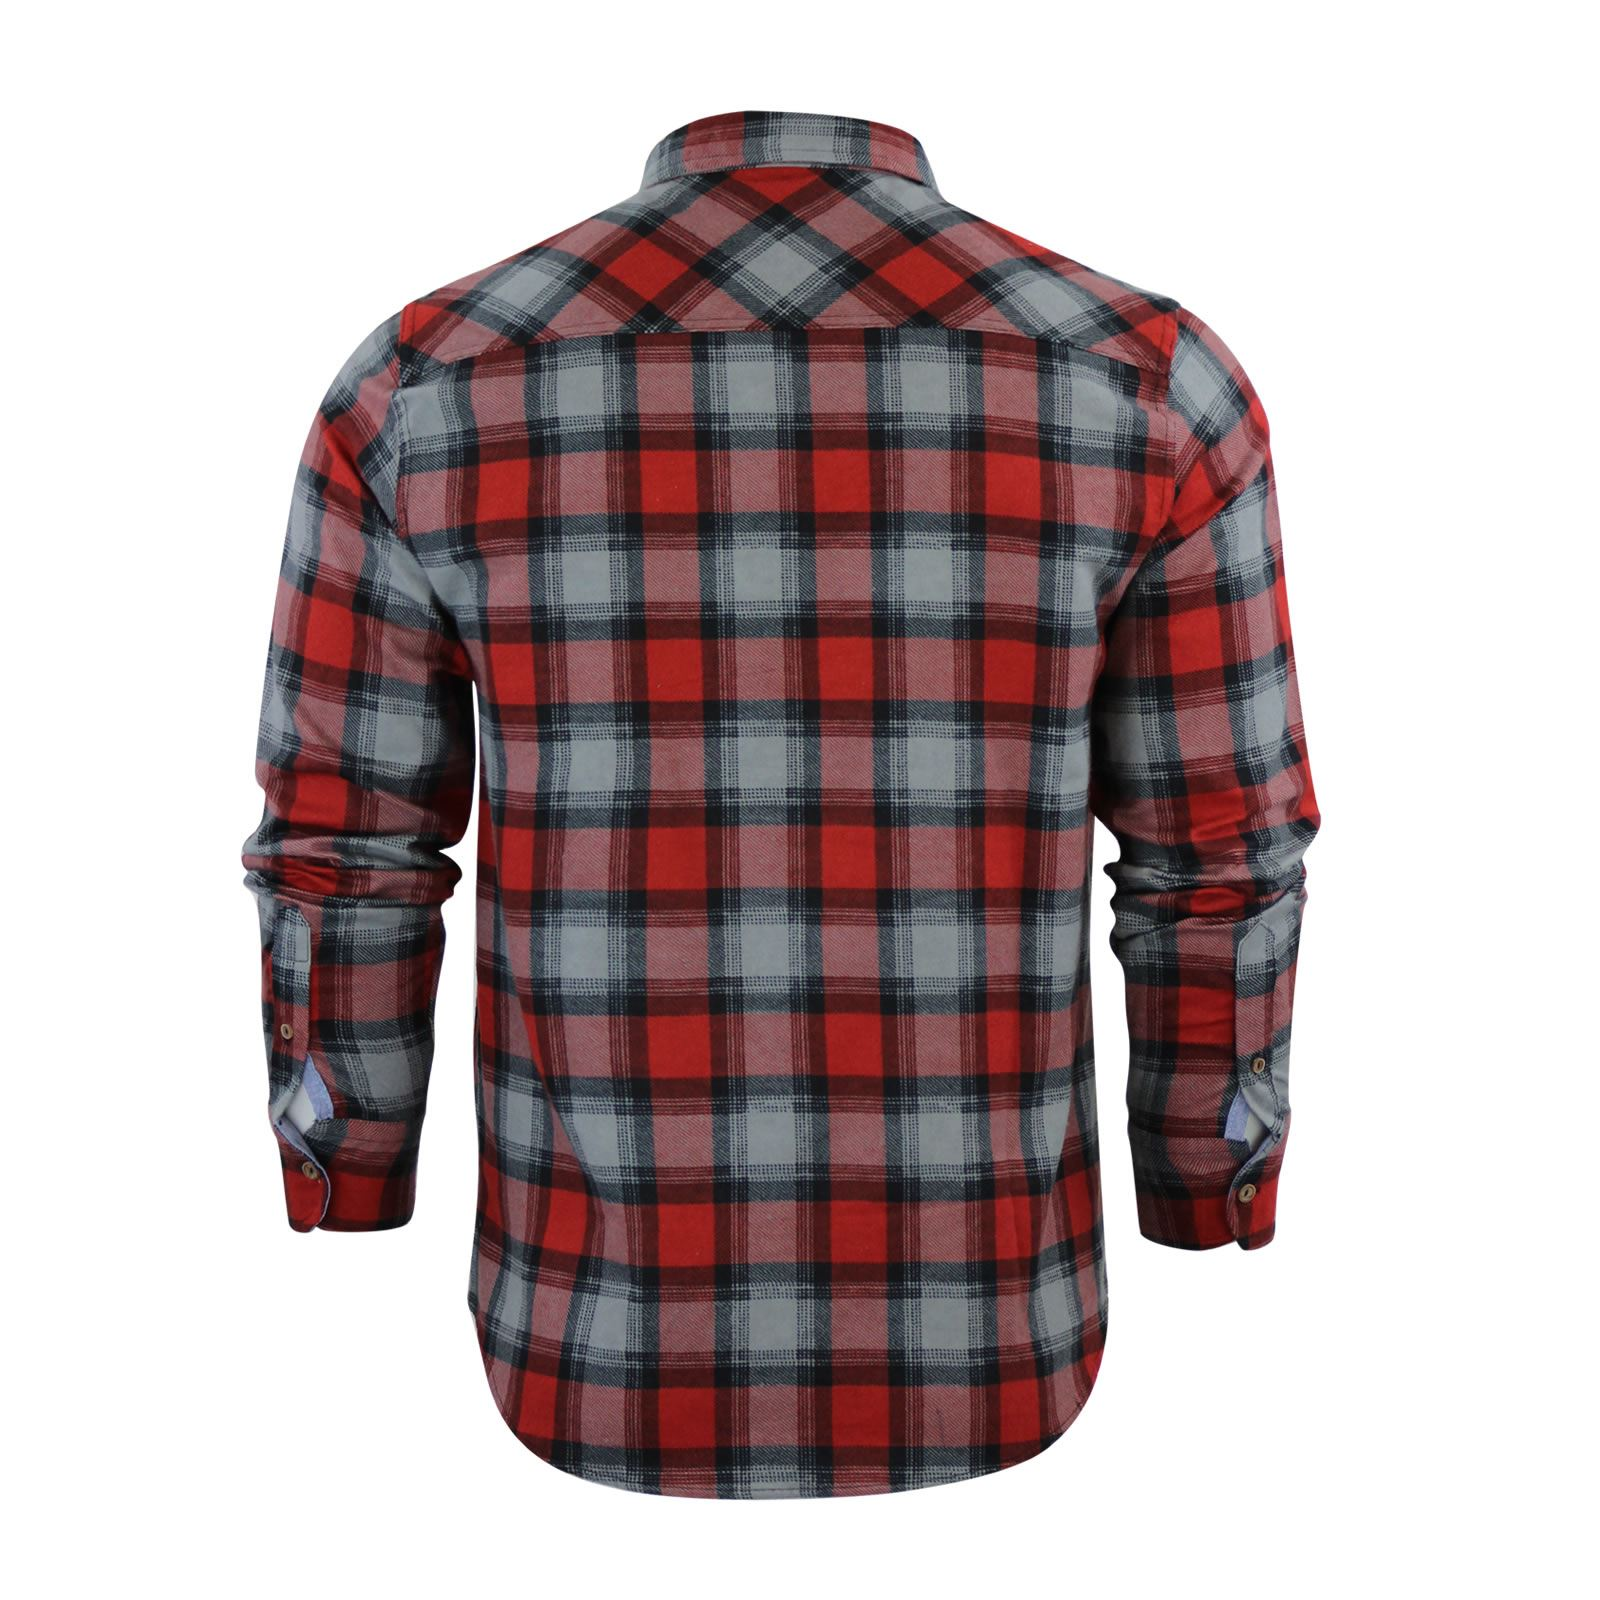 Mens-Check-Shirt-Brave-Soul-Flannel-Brushed-Cotton-Long-Sleeve-Casual-Top thumbnail 42